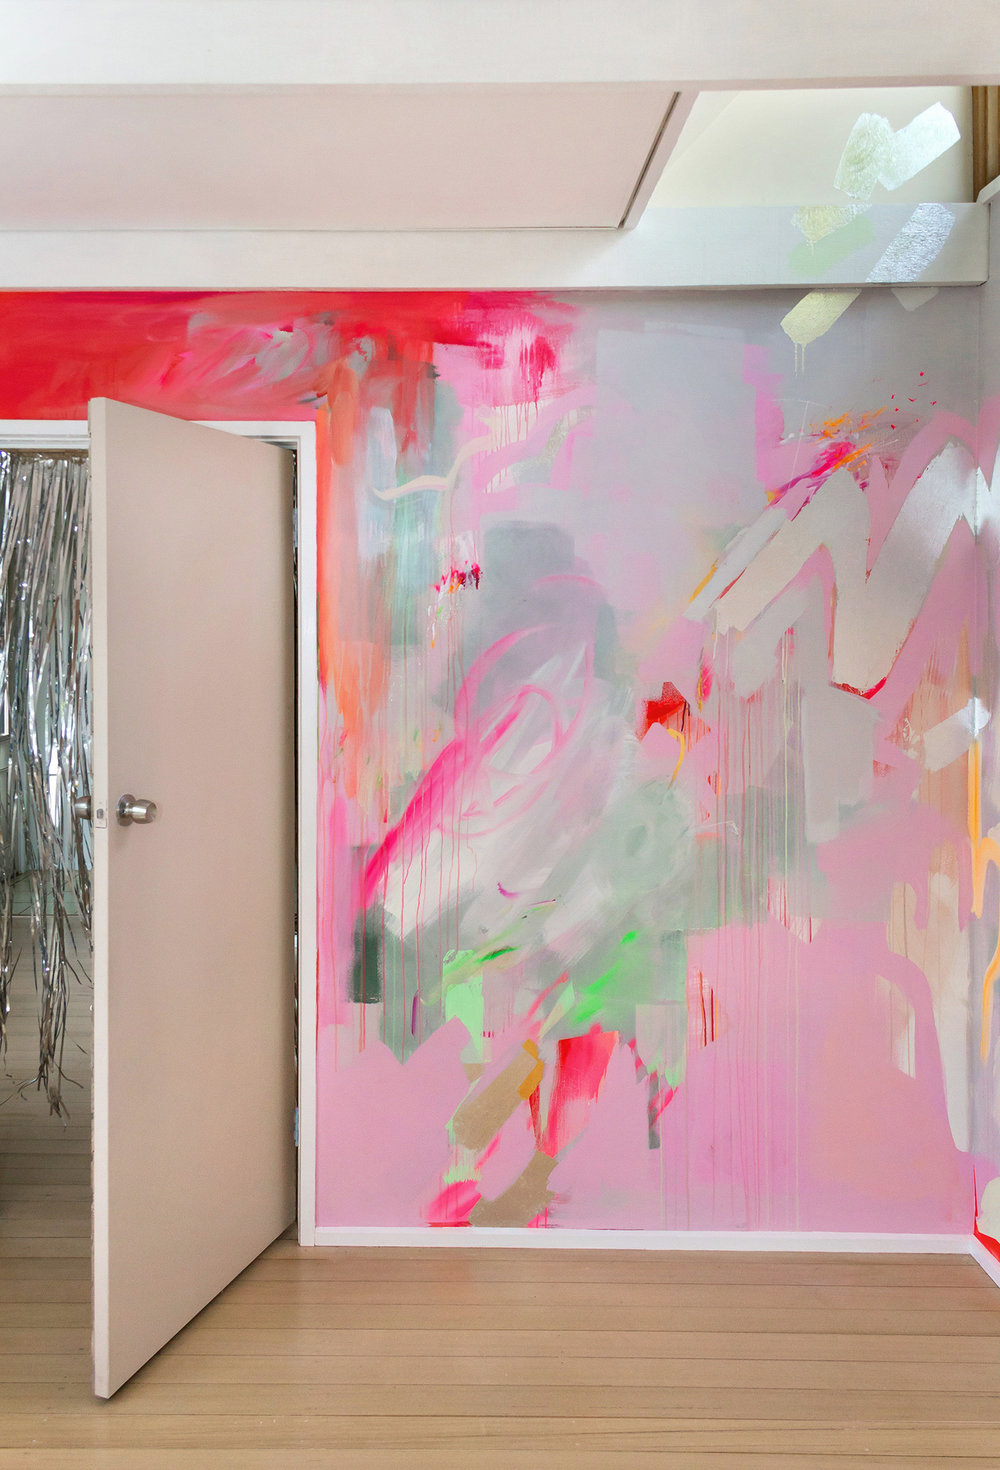 Vibrant abstract mural in pink, red, green and pastel colours, the energetic brushstrokes resemble a large butterlfy A silver metallic curtain flies out from the doorway and silver metallic leaf shapes create reflective surfaces.